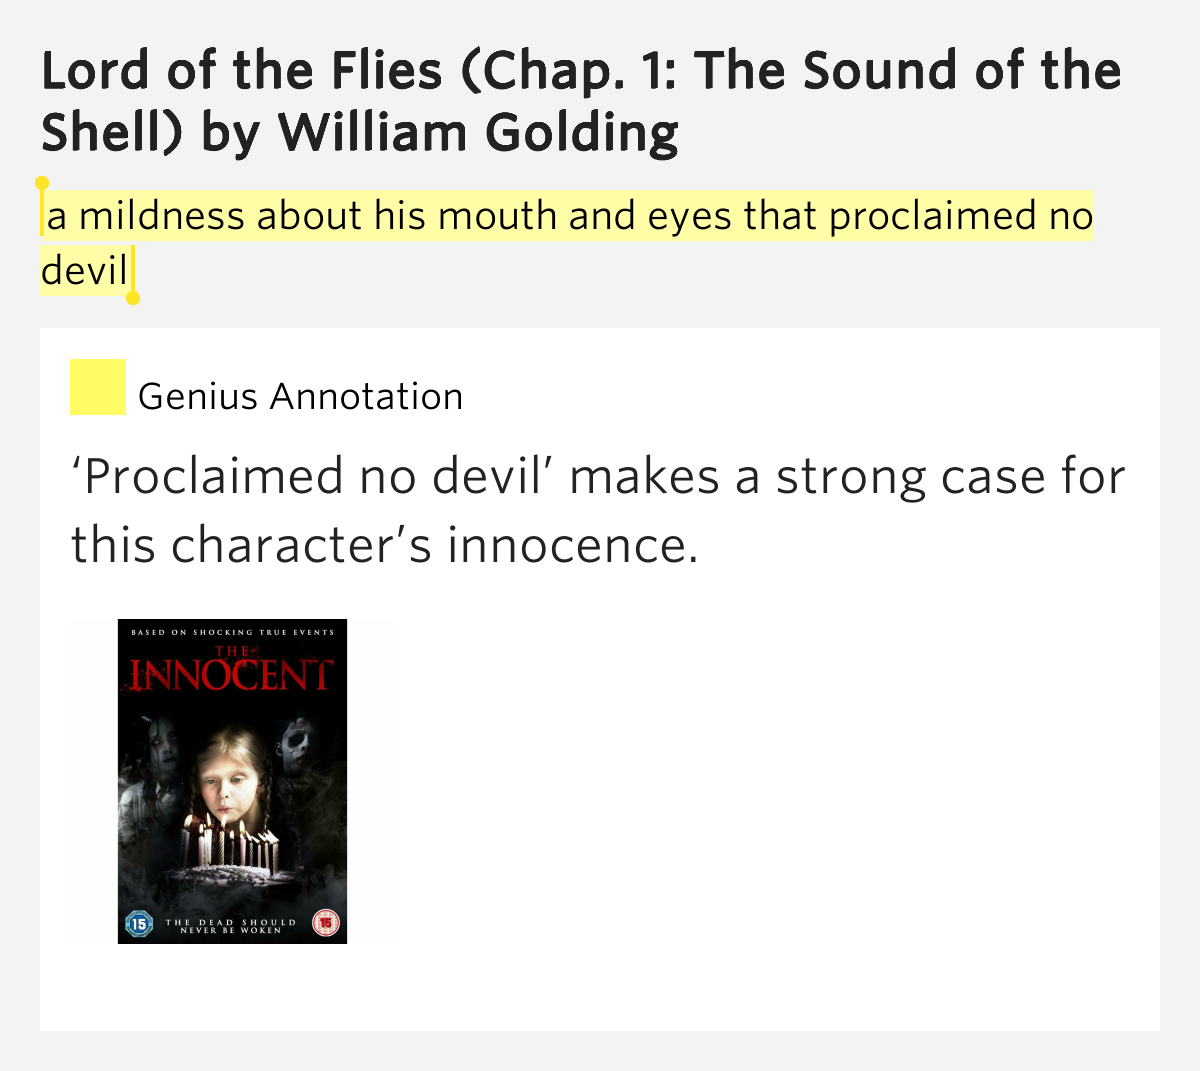 Lord Of The Flies Quotes: Alr3gzdyld0g50j0qrw3mpohh.png